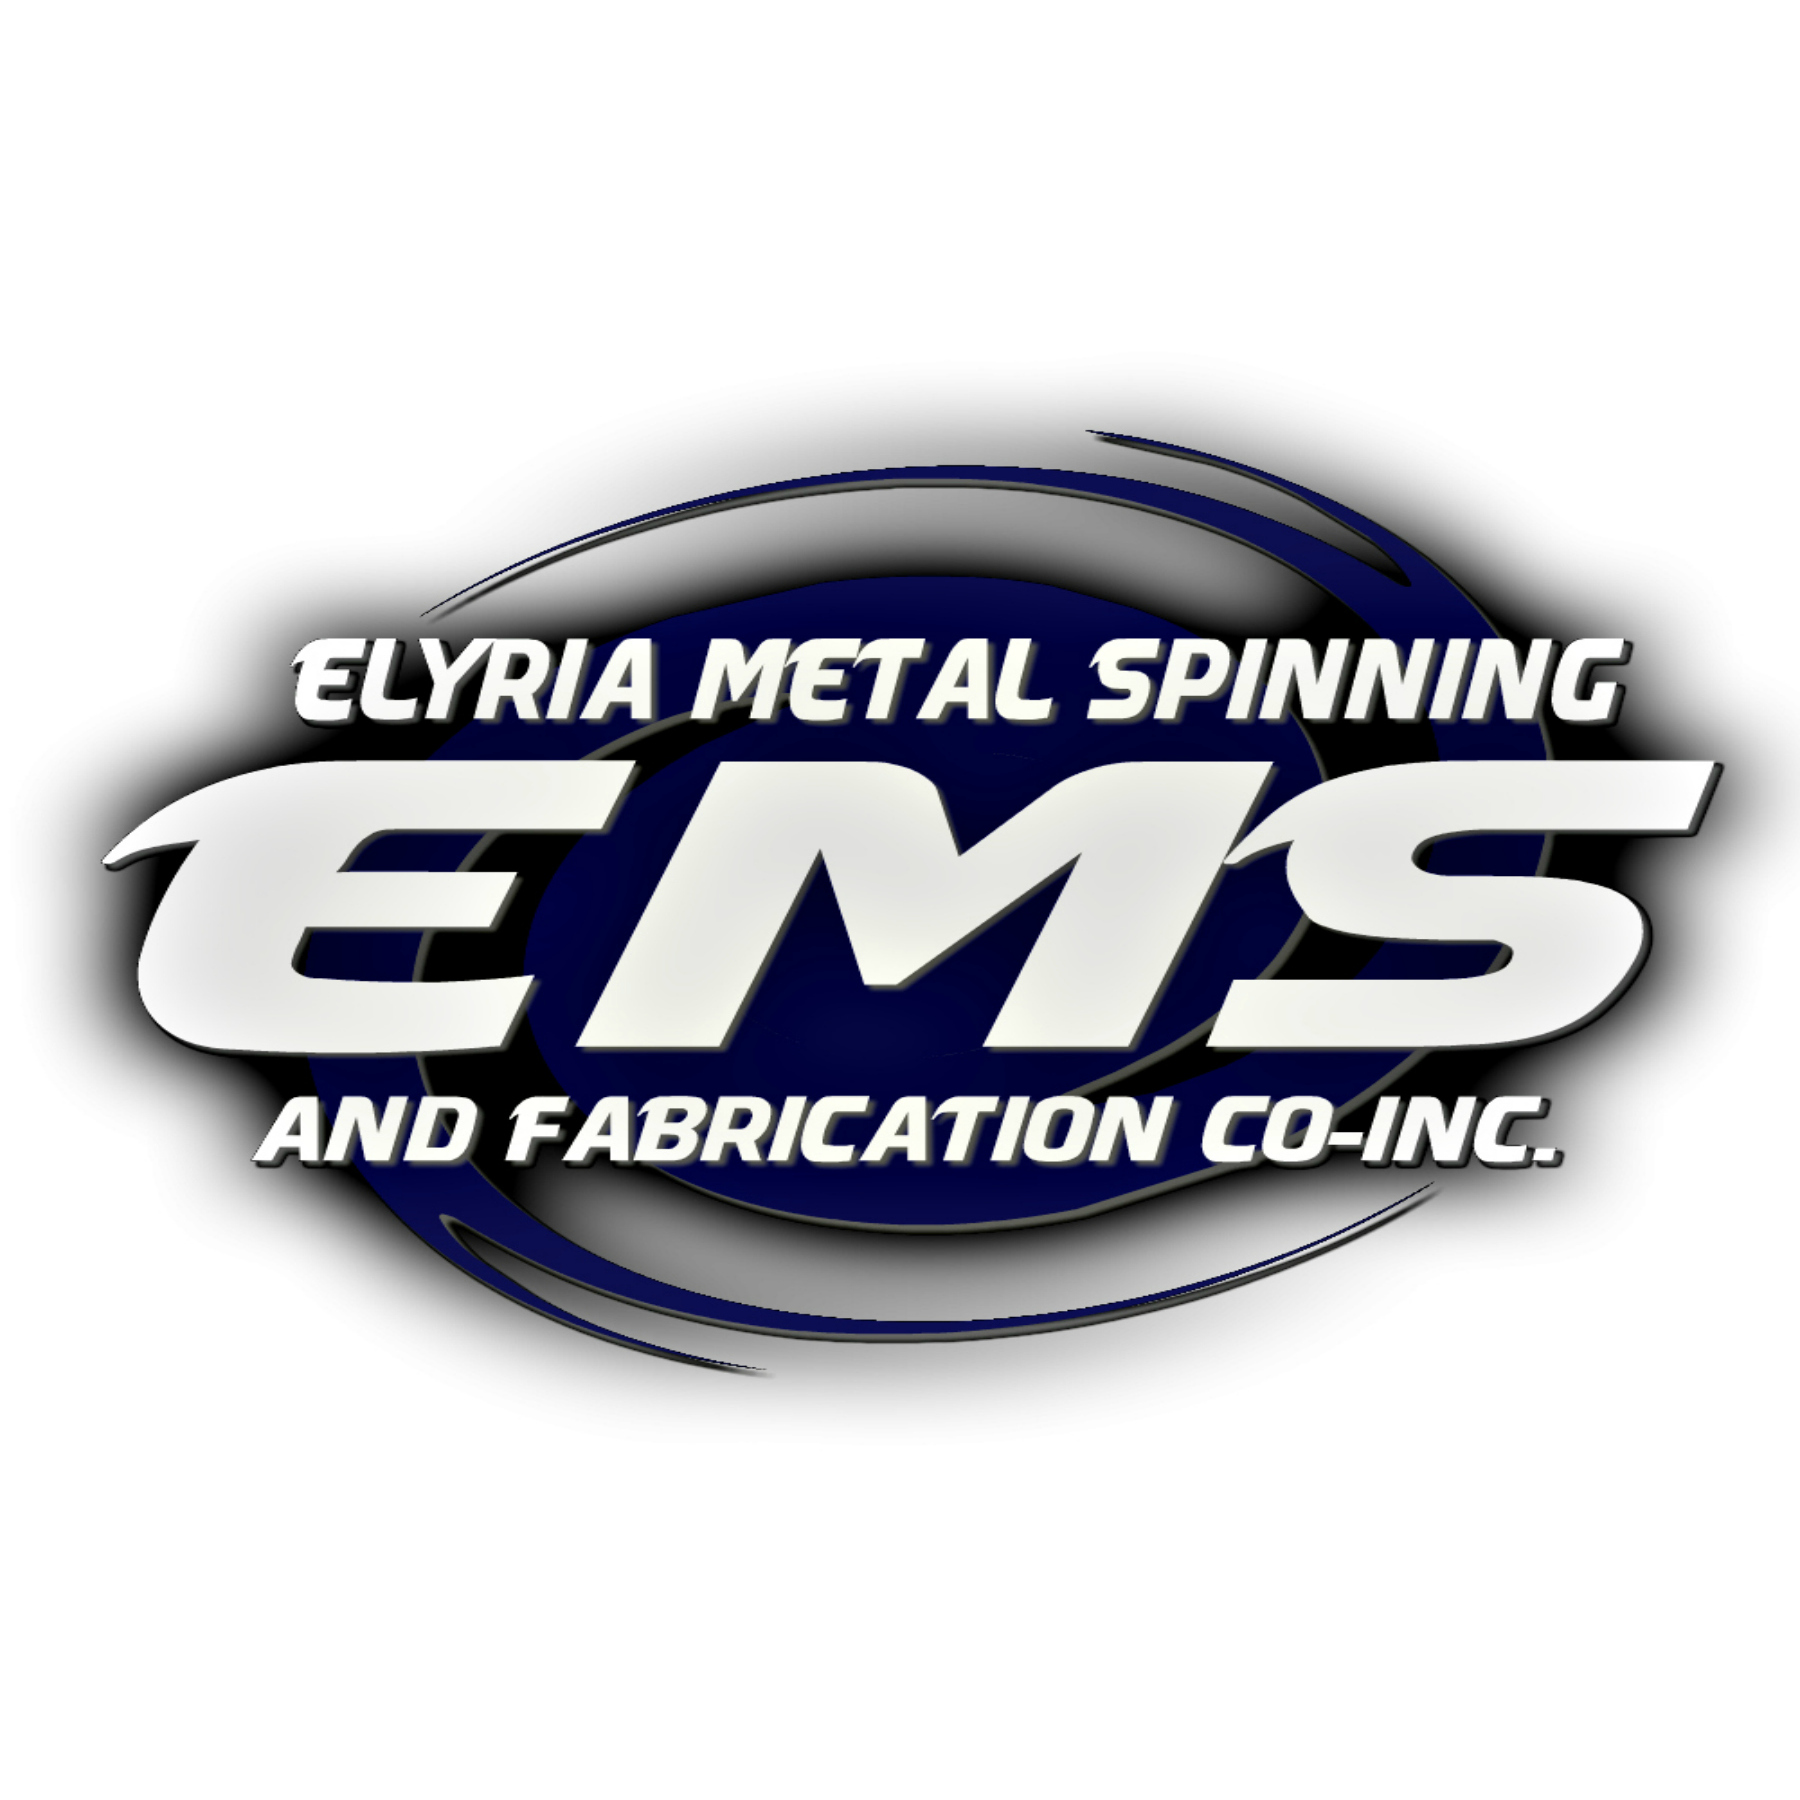 Metallic Fabricator Company Mexico: Elyria Metal Spinning And Fabrication Co-Inc. At 7511 W